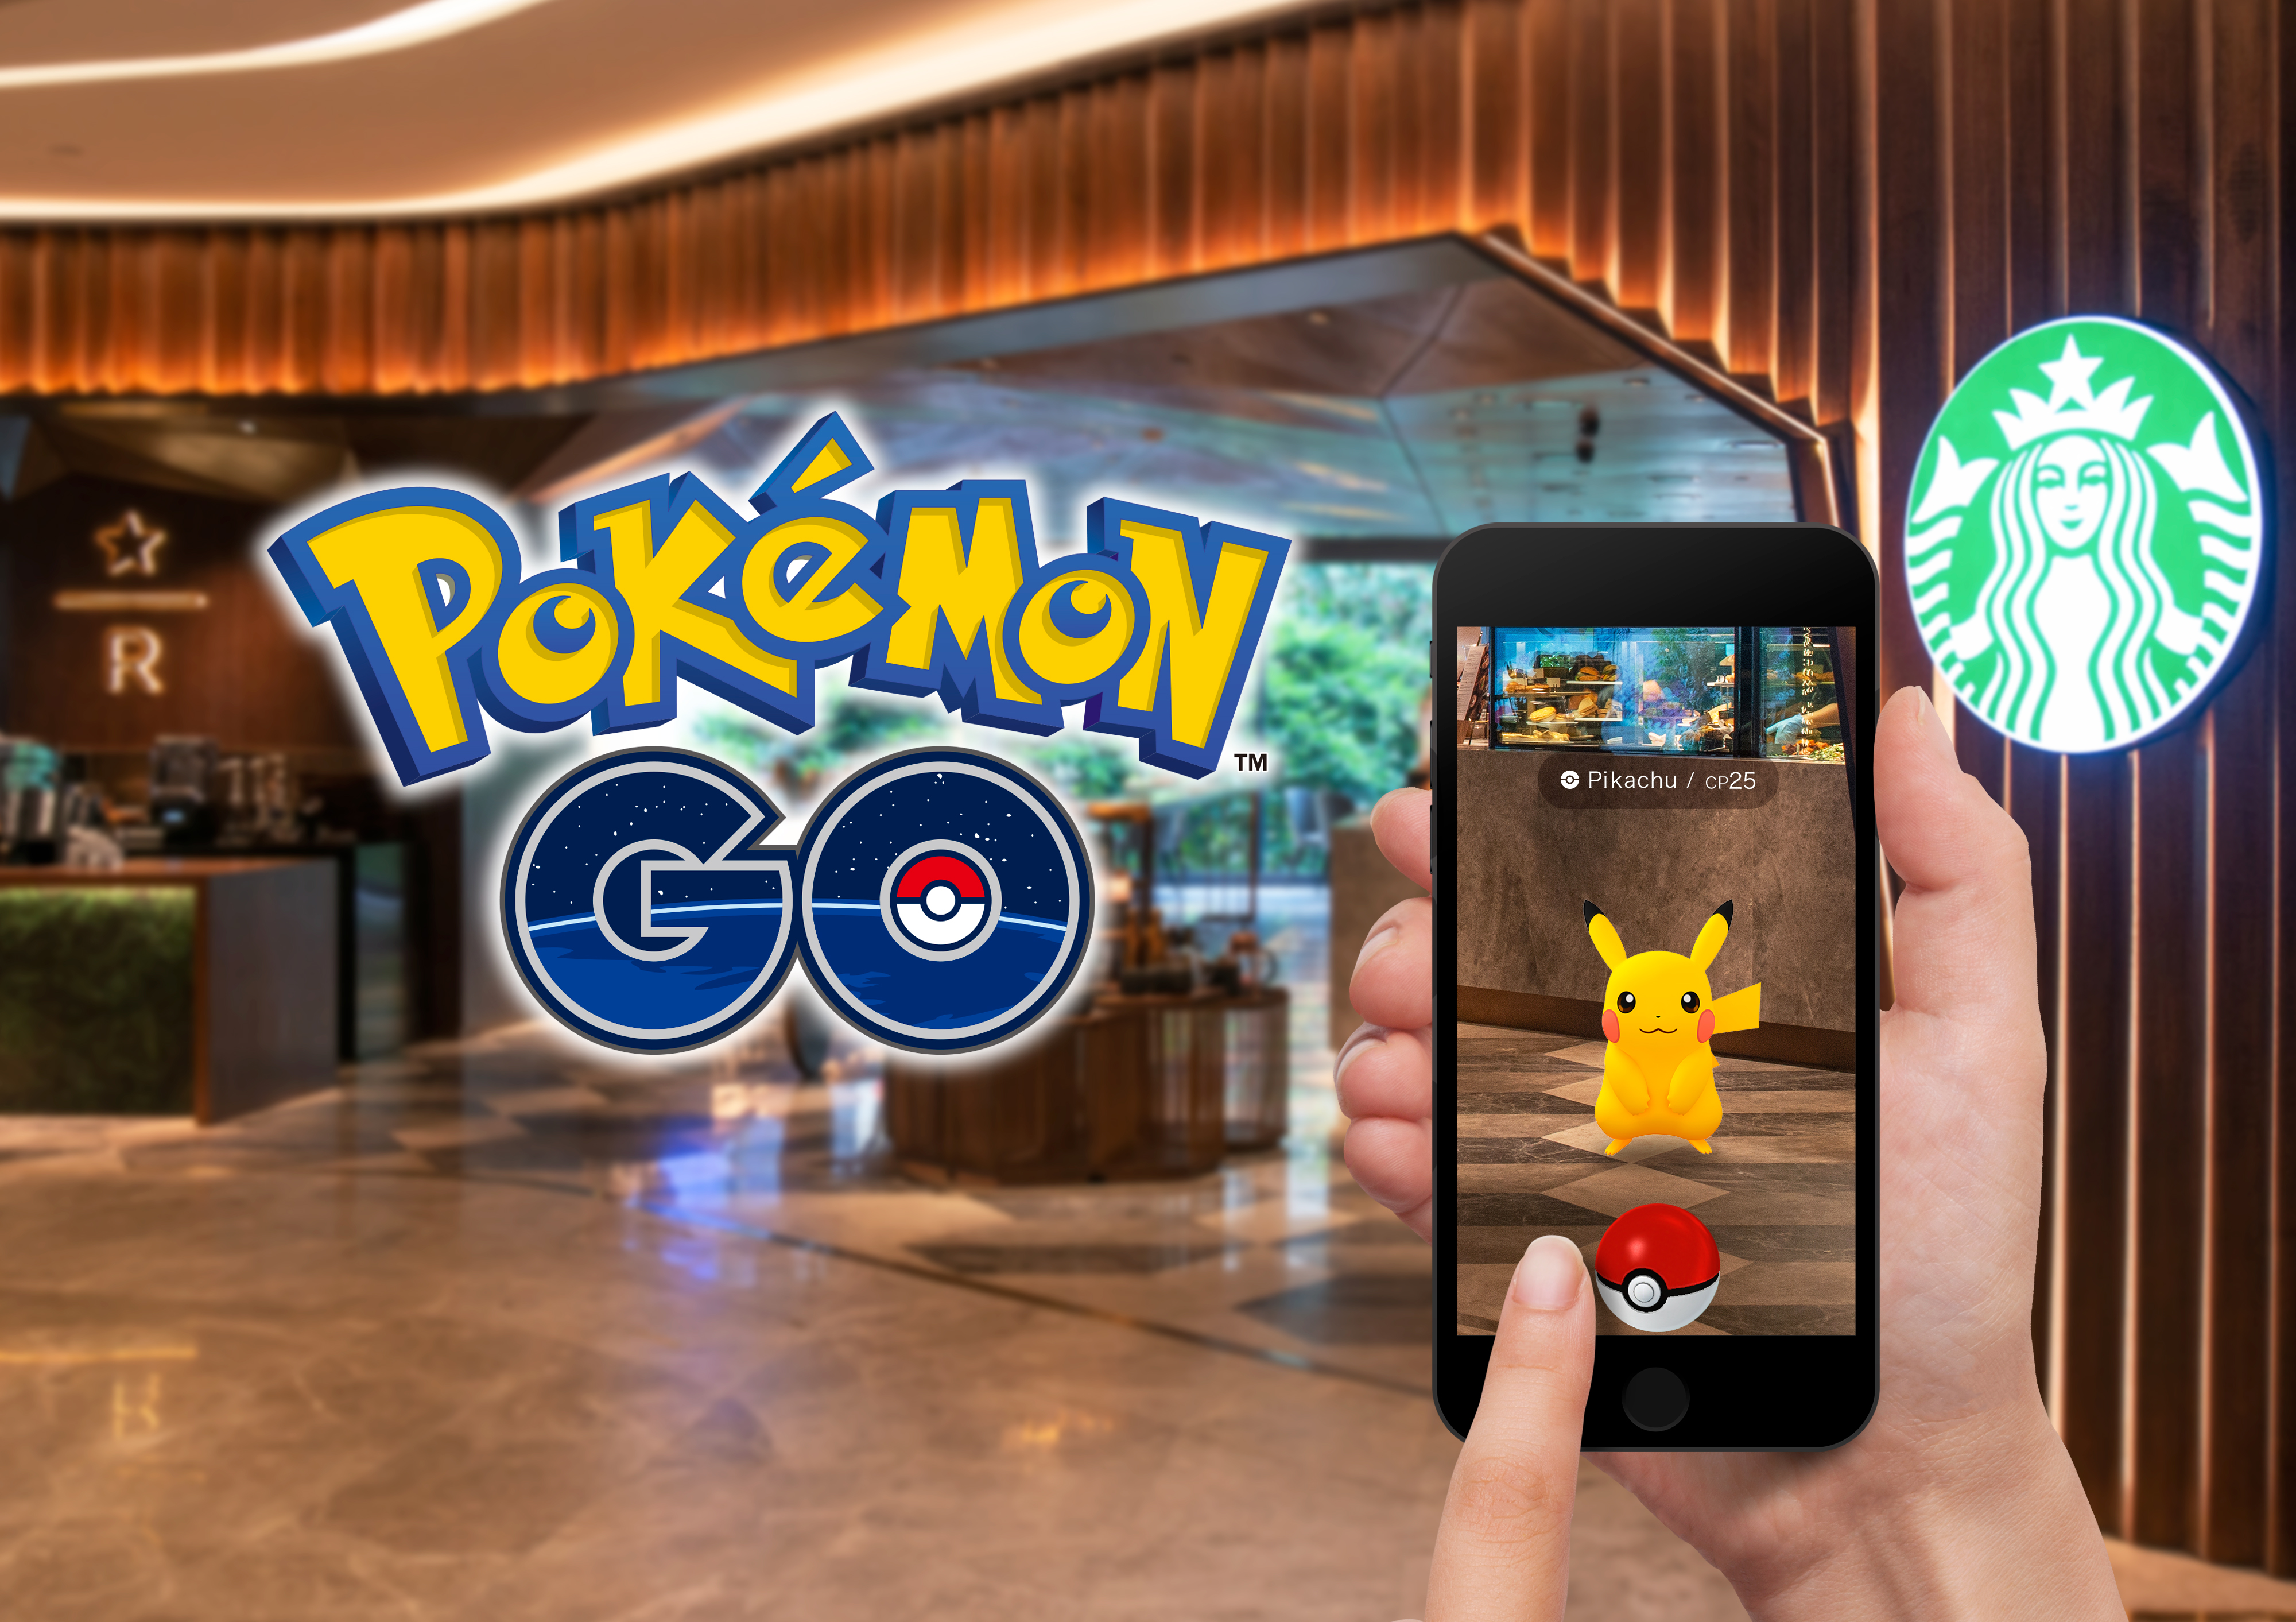 Pokémon GO partners with Starbucks in Select Asia Markets